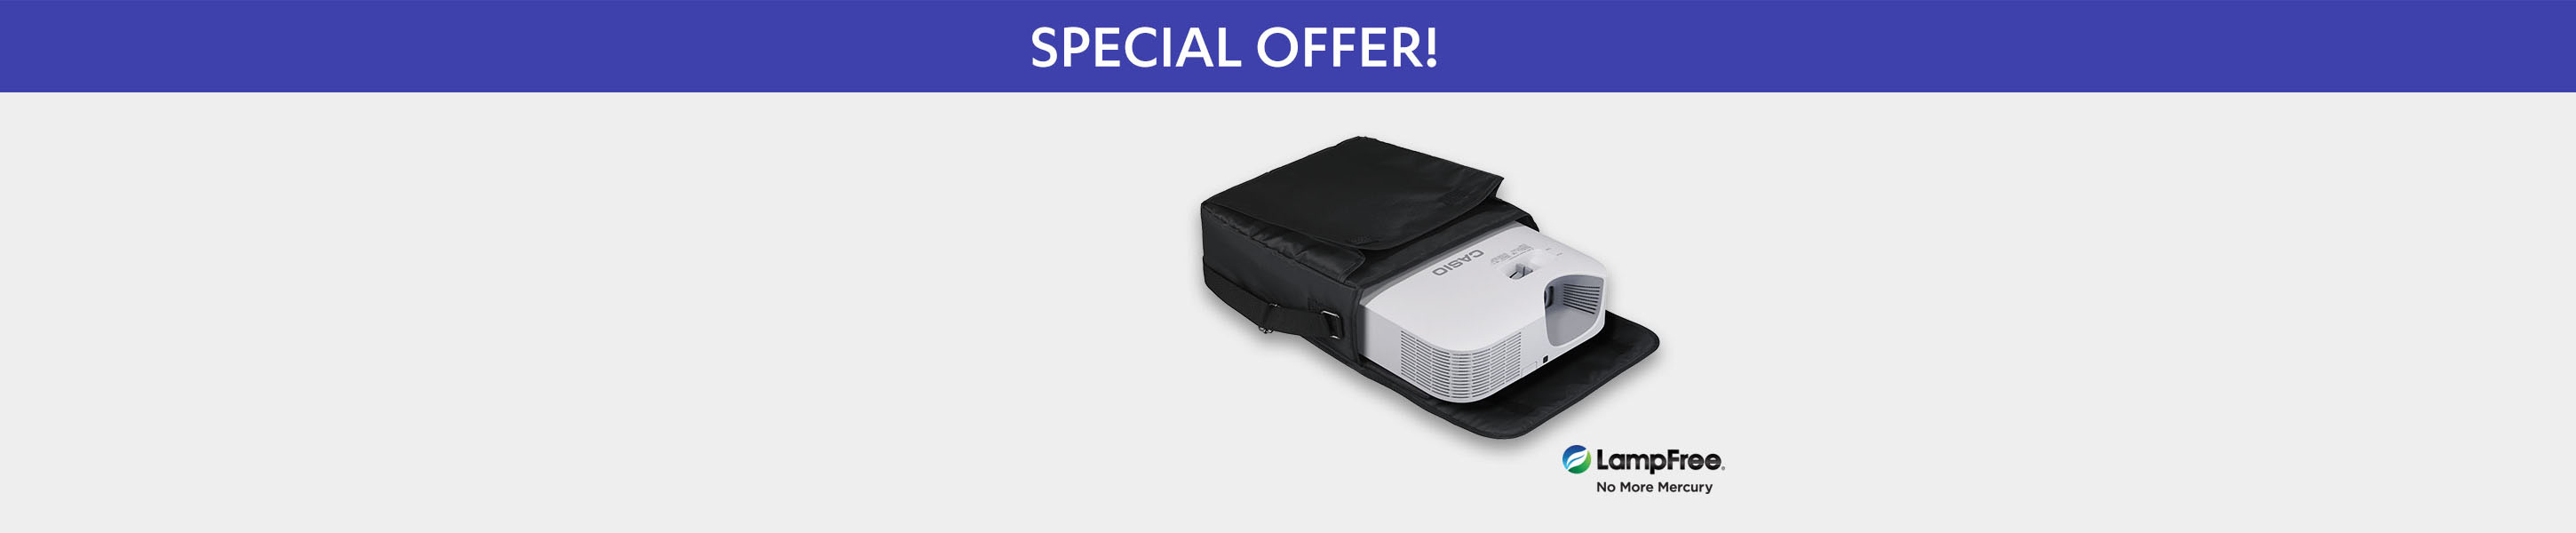 Purchase XJ-F200WN and receive a Free Projector Case and Free Premium Ground Shipping